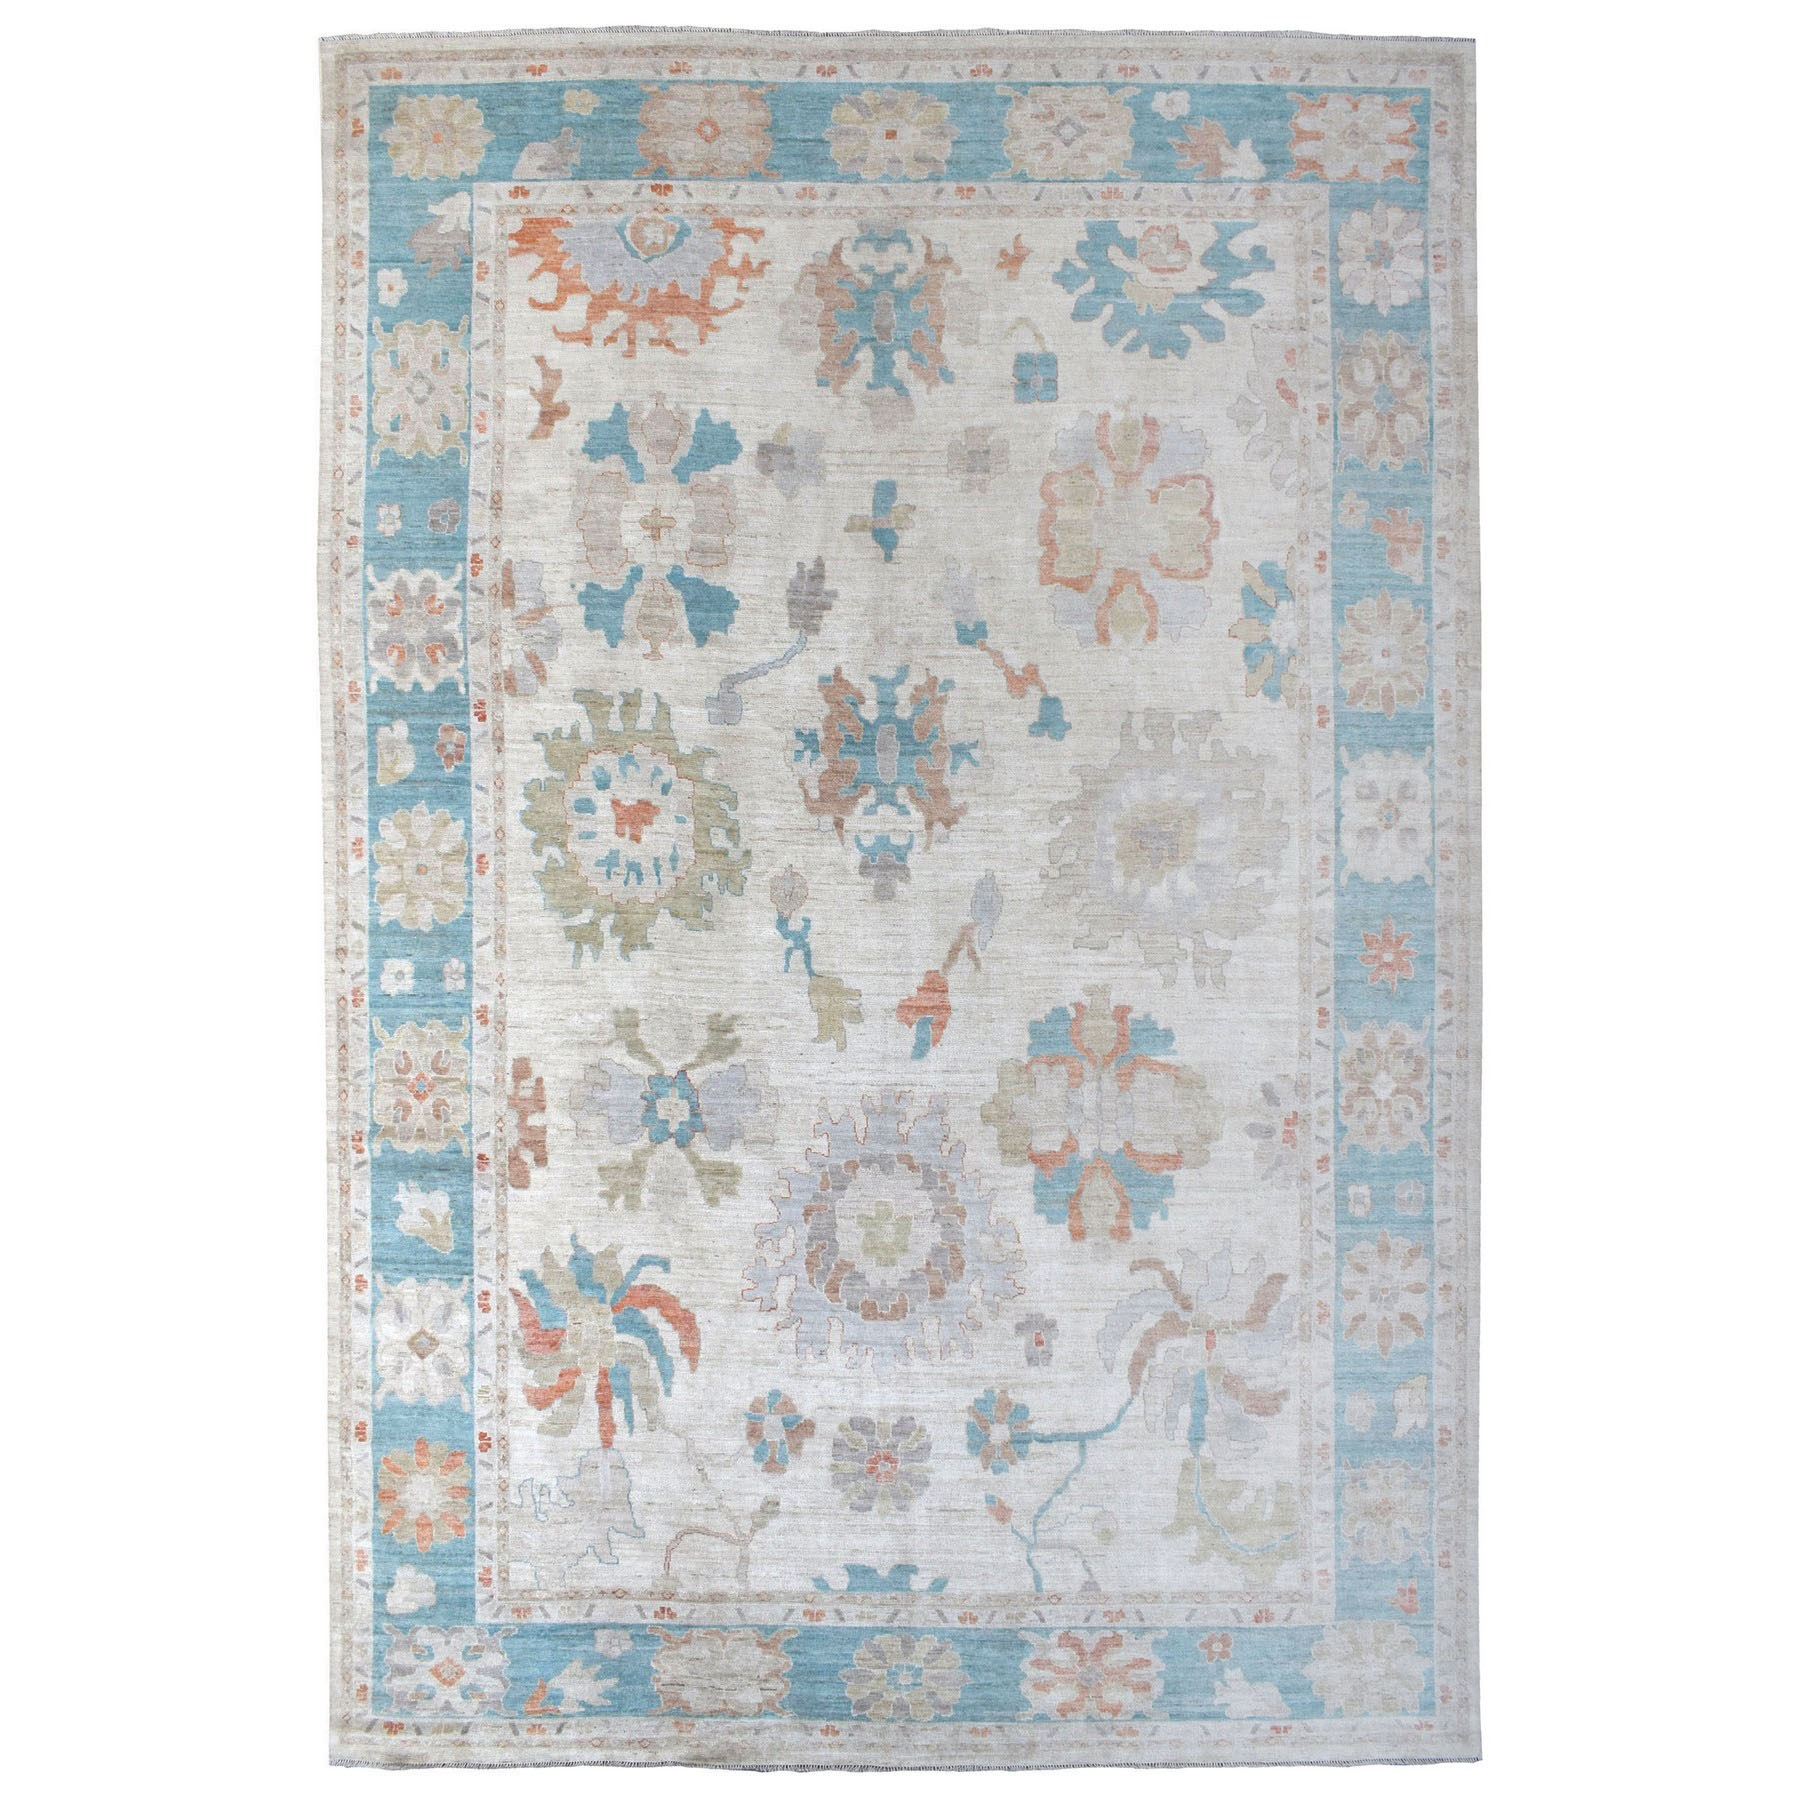 Oushak And Peshawar Rugs LUV607365